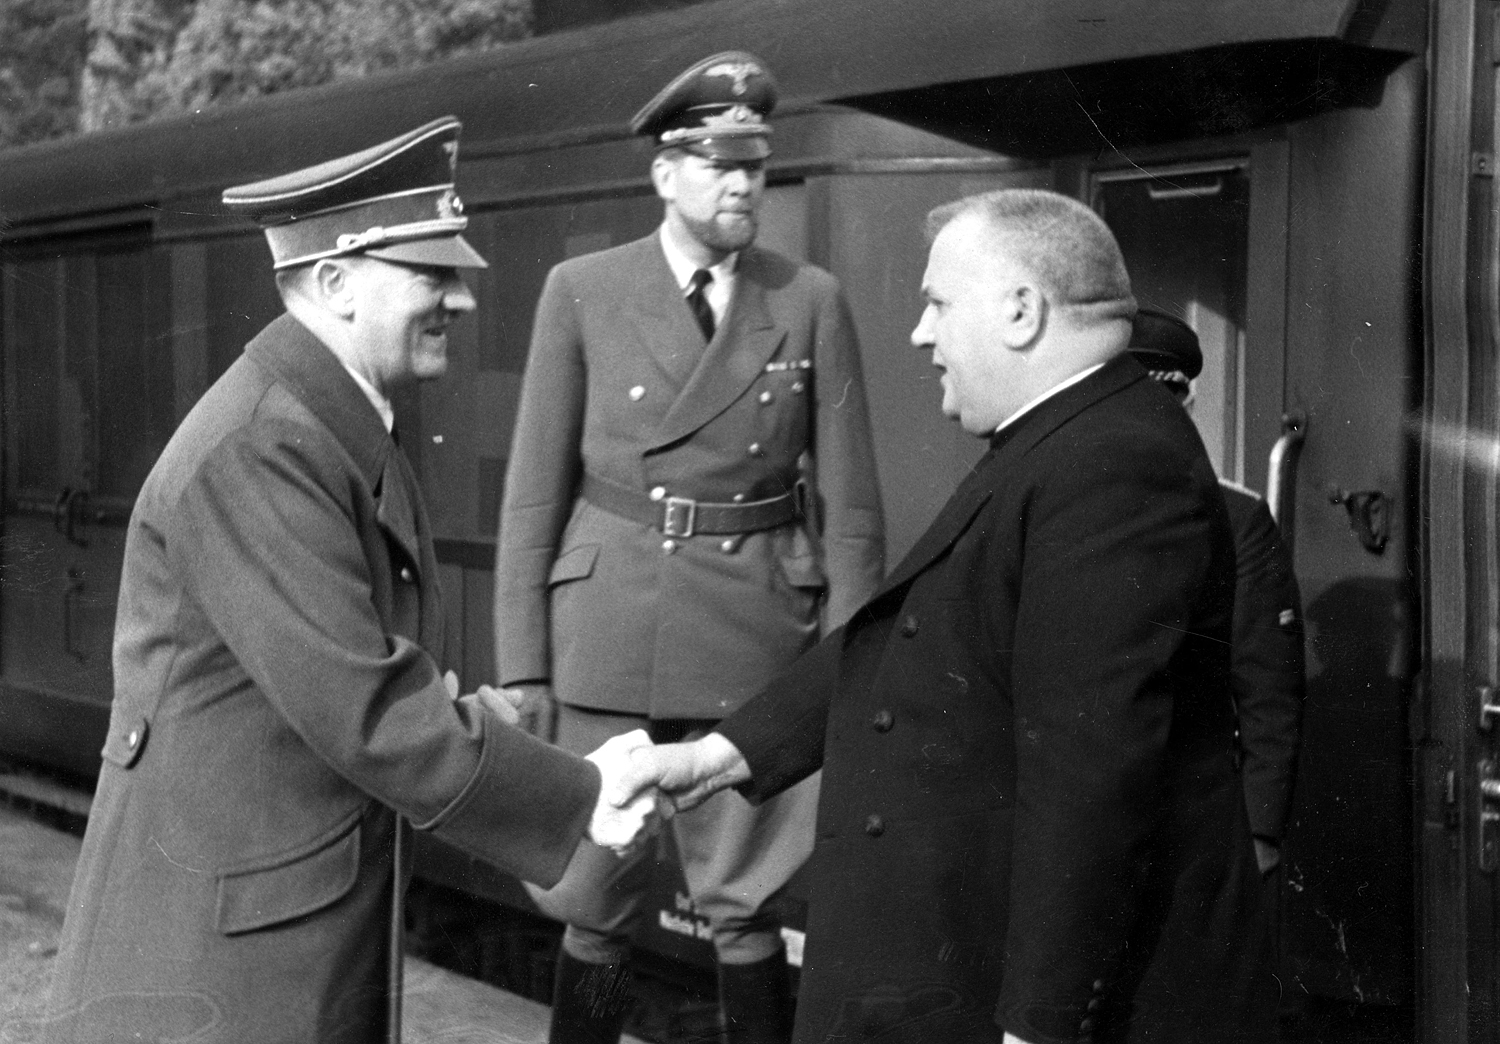 Adolf Hitler greeting the slovakian president Dr. Jozef Tiso at the station near Wolfsschanze, the head of the Protocol Department of the Foreign Office Alexander von Dörnberg is between them